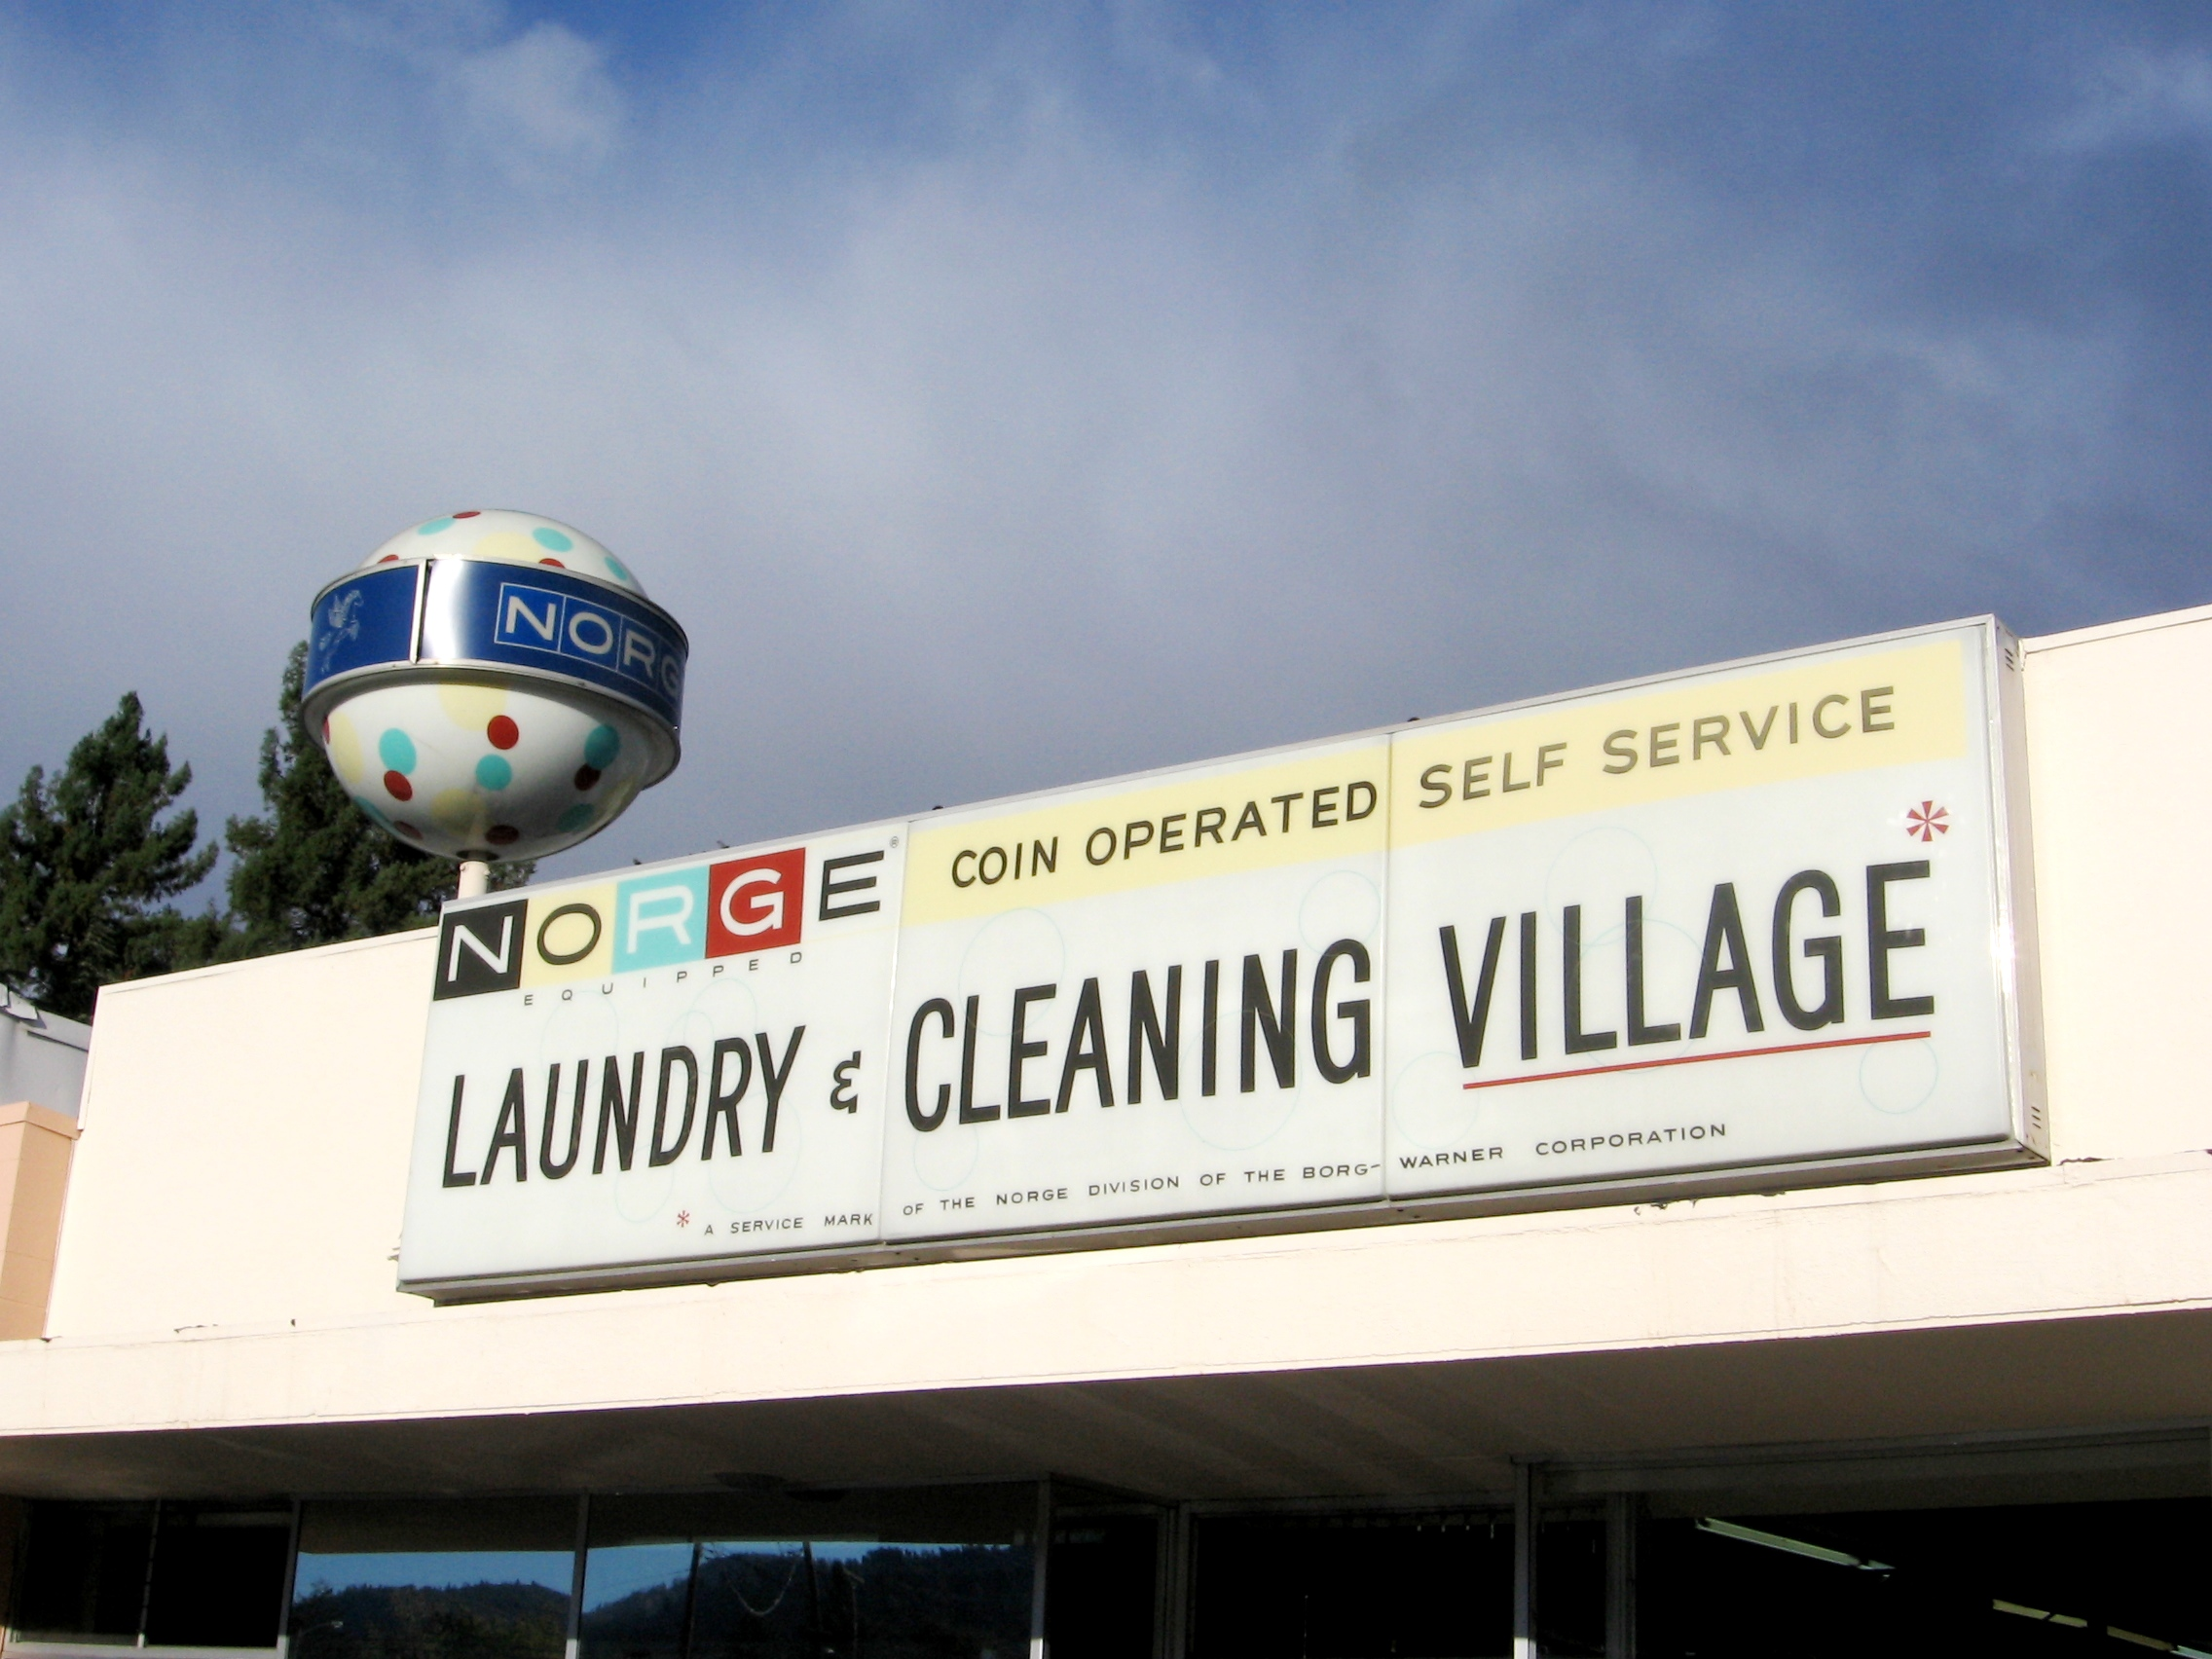 A Norge Cleaners and Full Services - 723 South State Street, Ukiah, CAalifornia U.S.A. - October 5, 2007